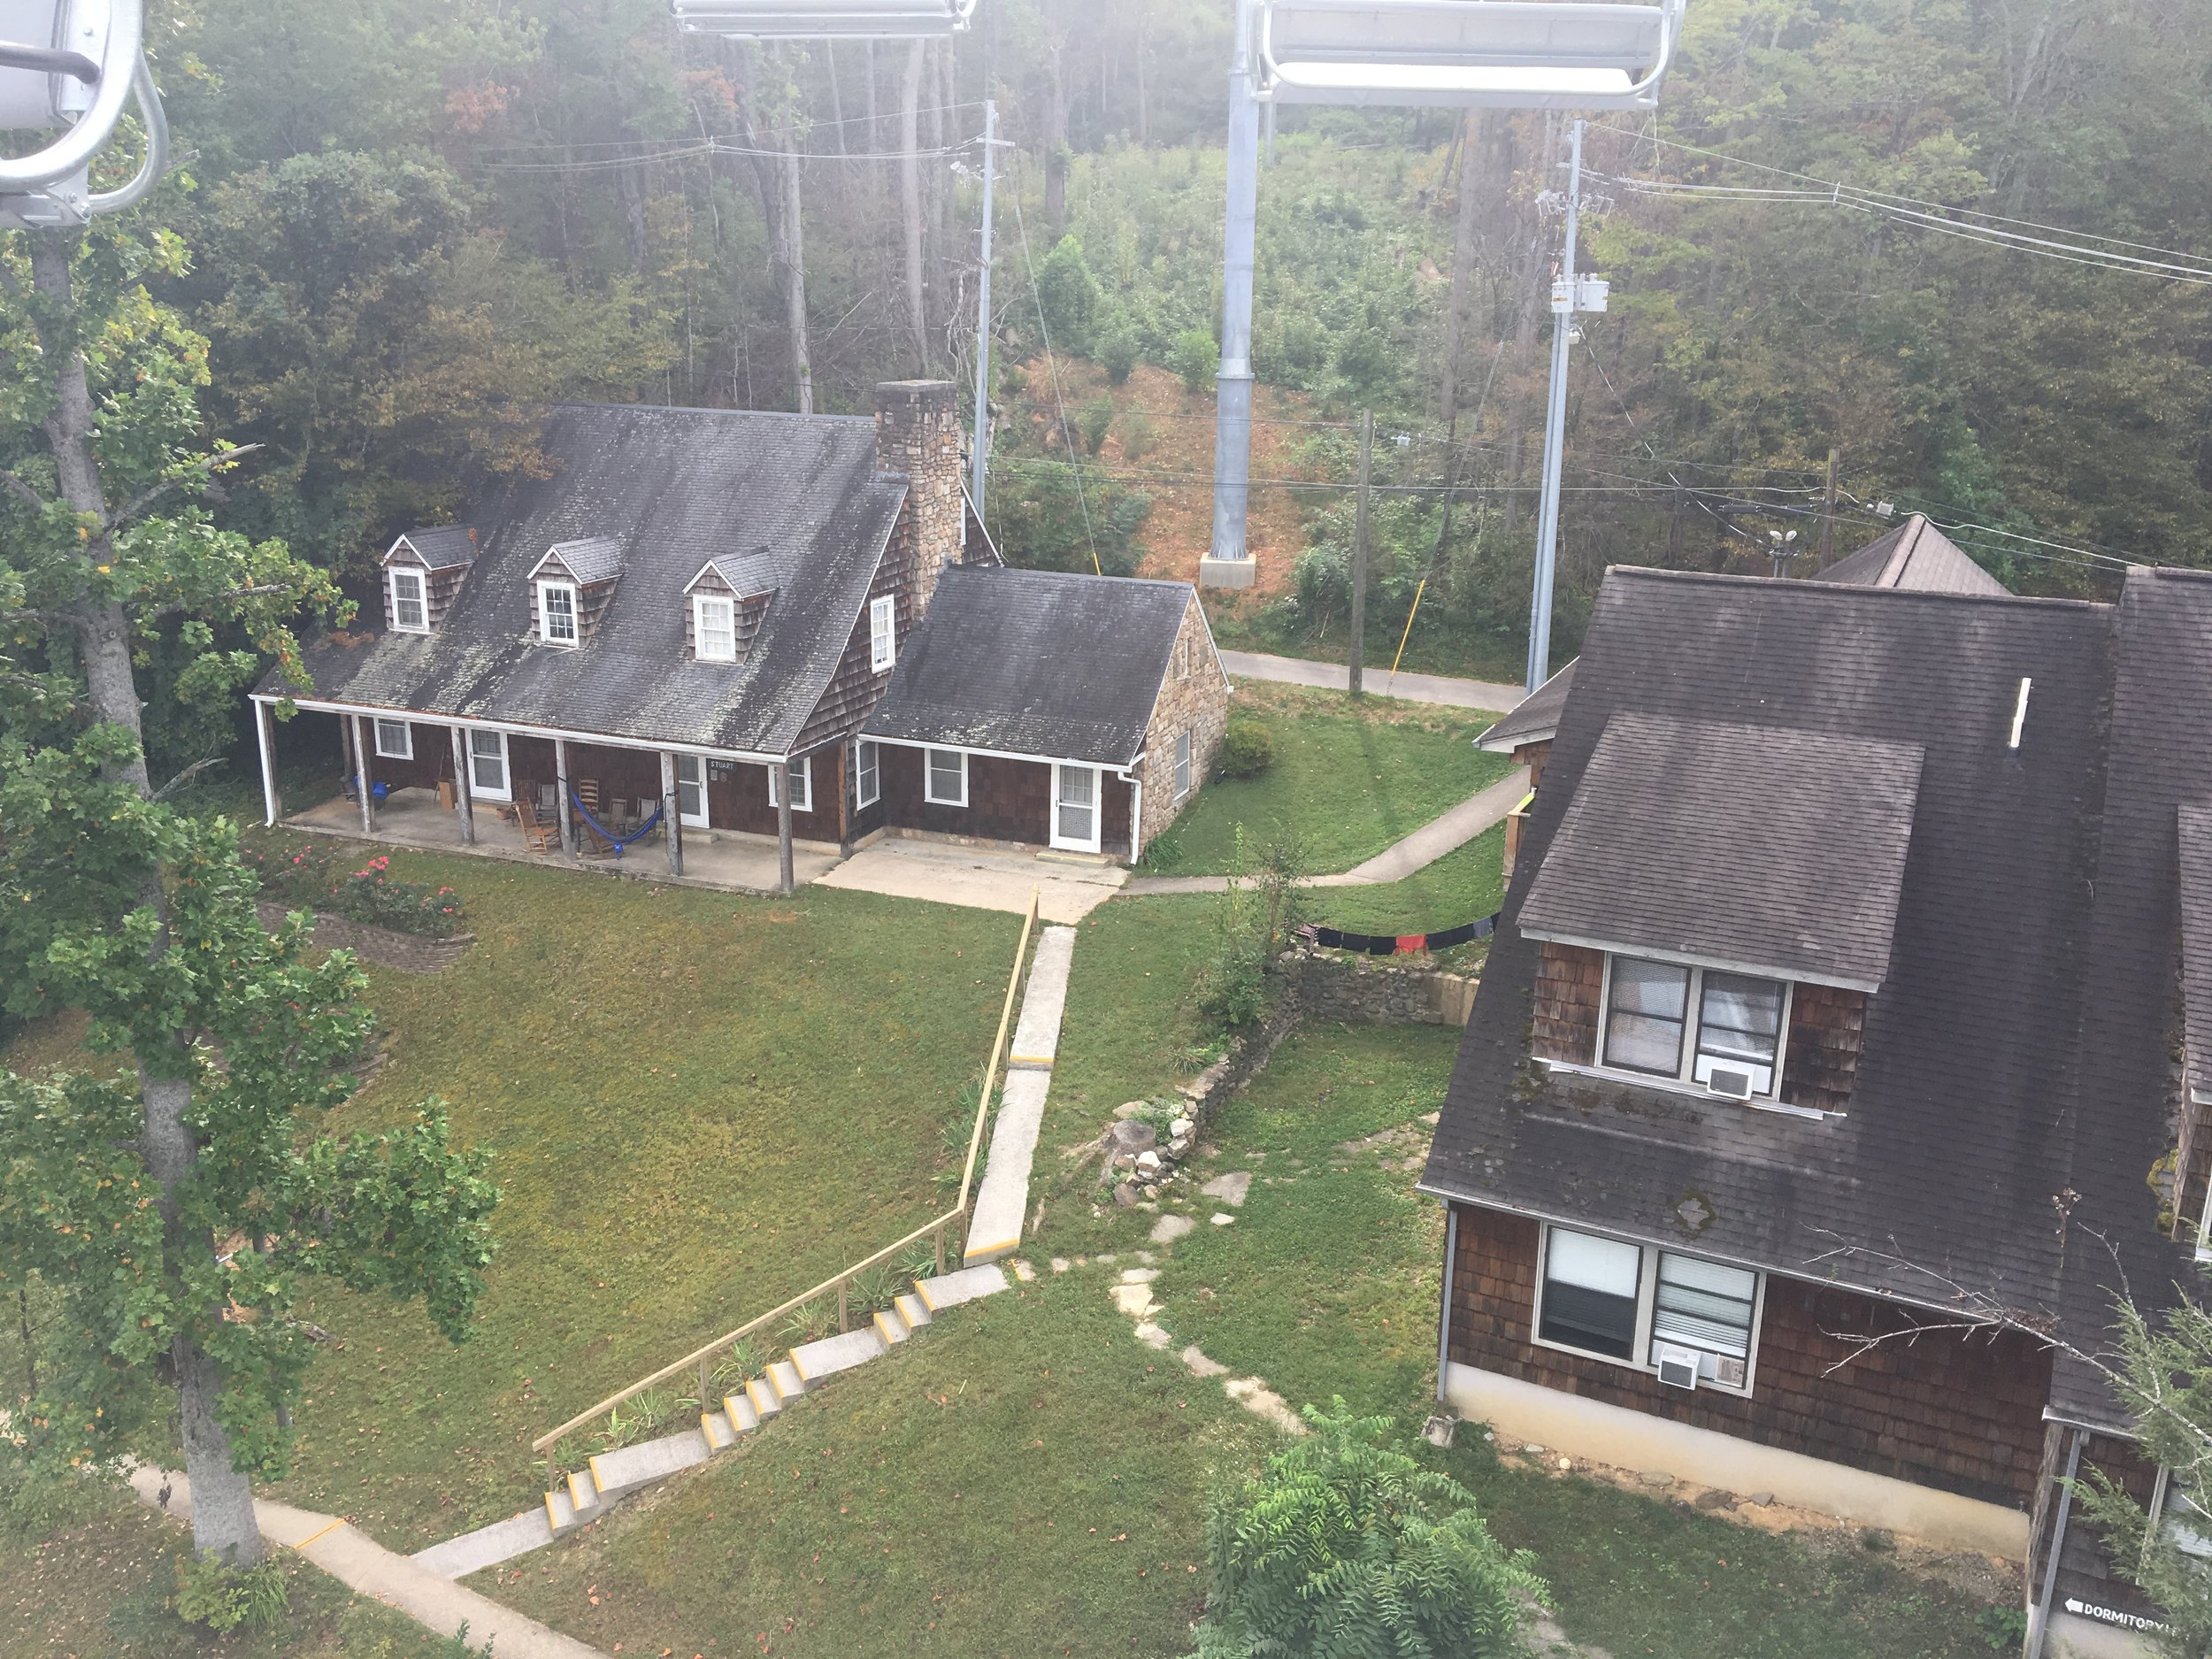 View of part of the Arrowmont campus from (one of) the local chair lift attractions